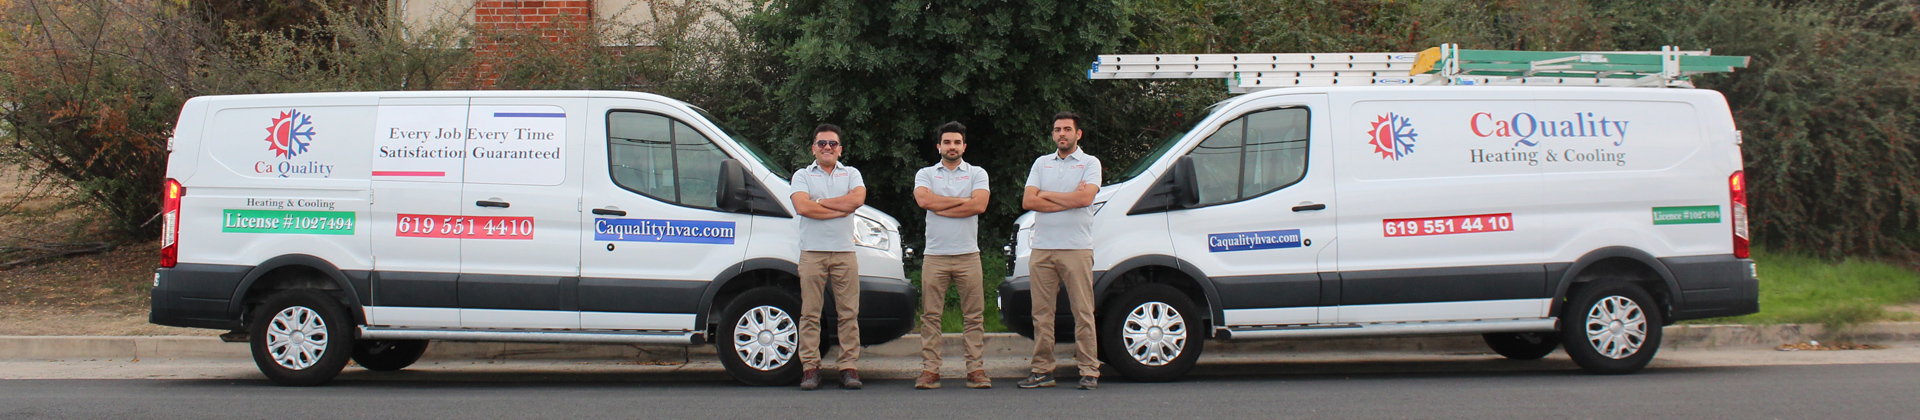 San Diego Commercial HVAC Contractors| CA Quality Heating & Cooling